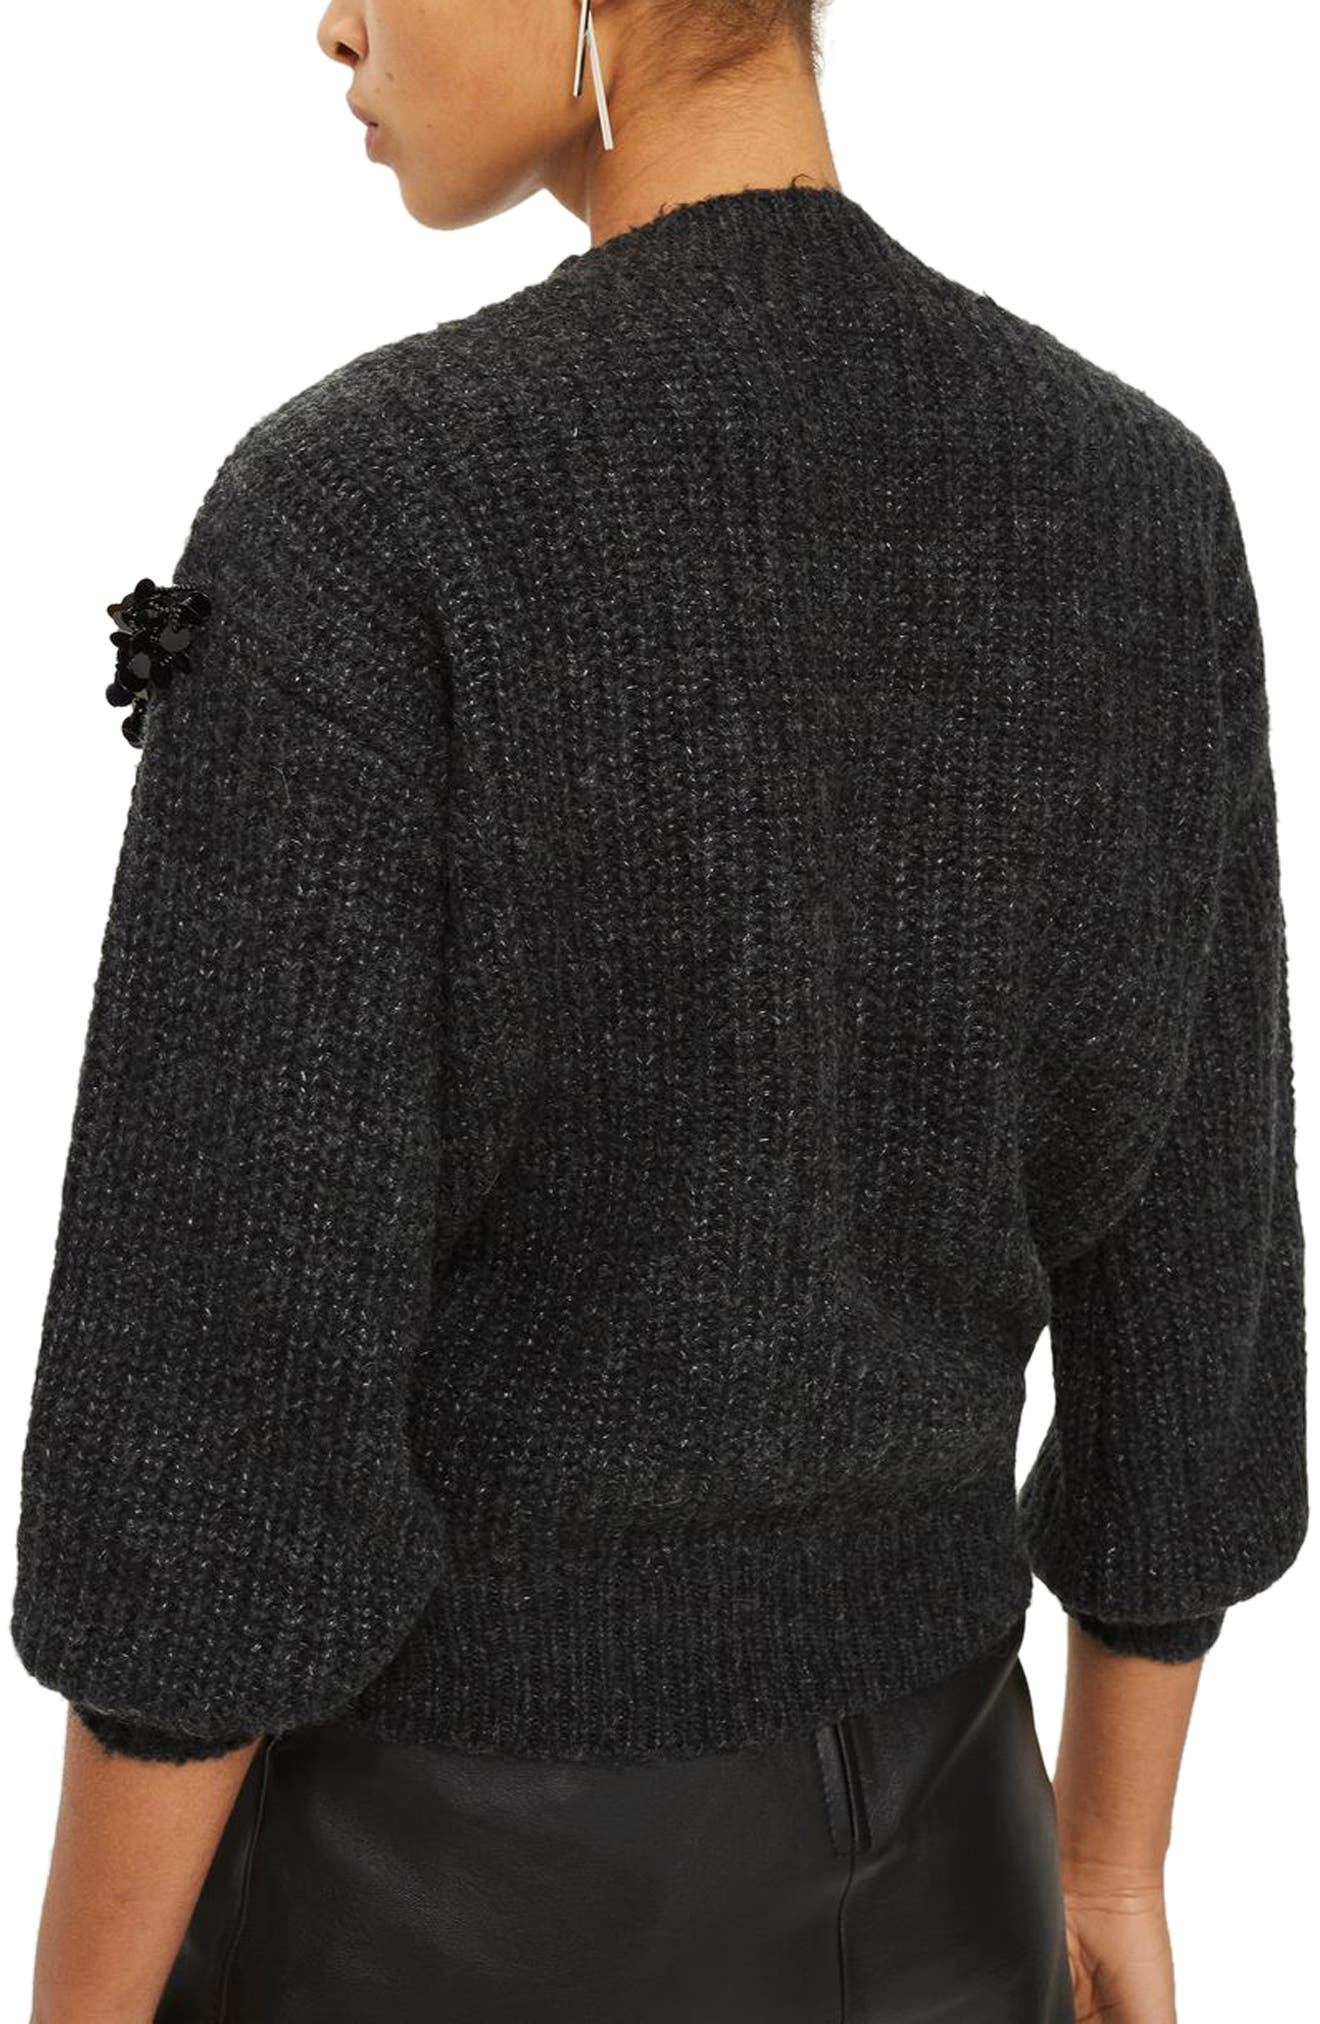 Cluster Embellished Sweater,                             Alternate thumbnail 2, color,                             Charcoal